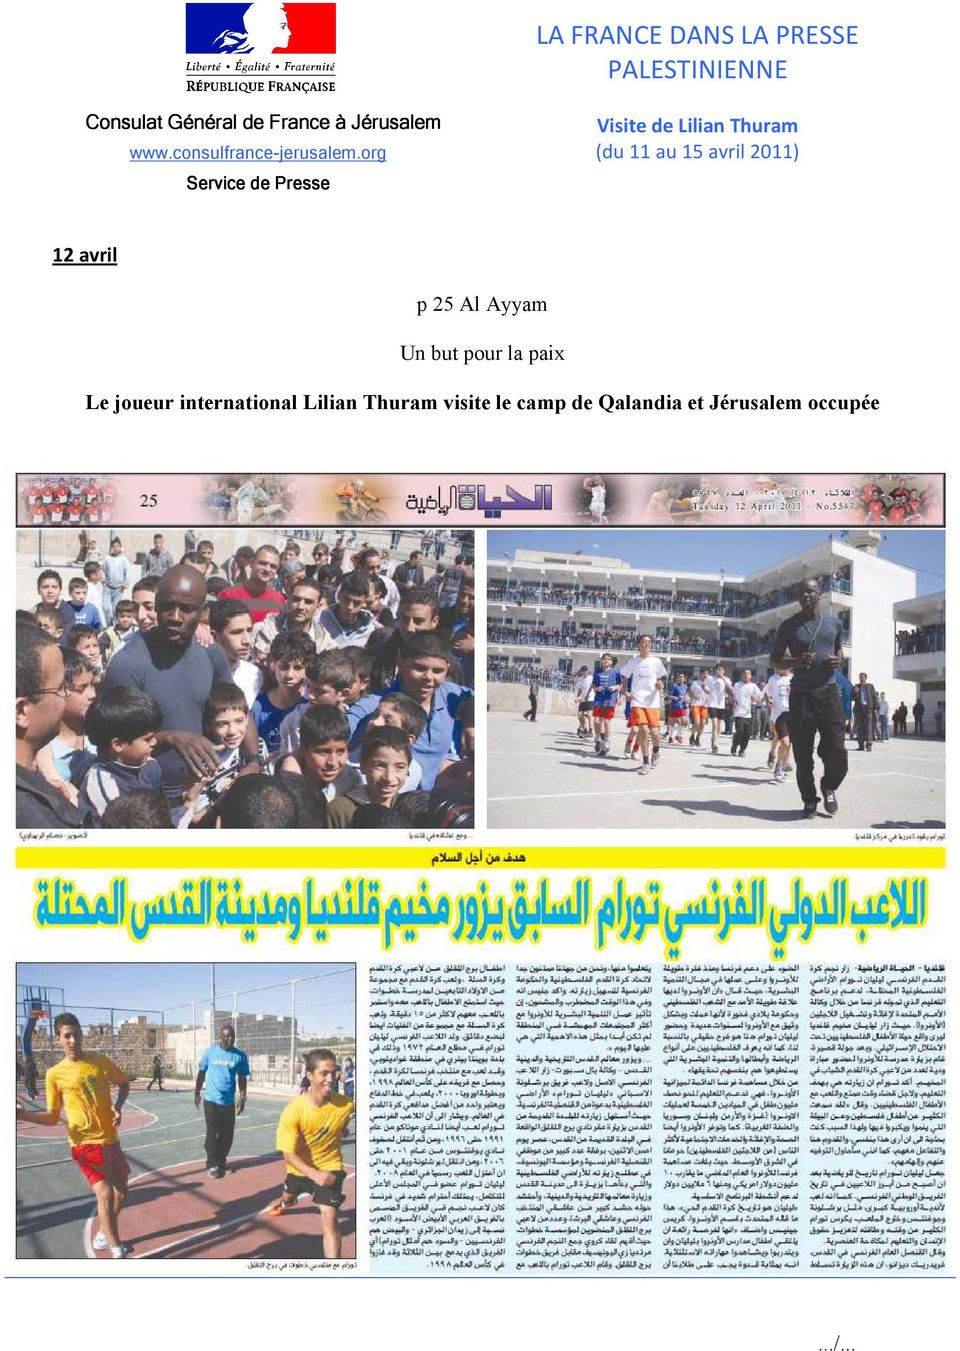 LA FRANCE DANS LA PRESSE PALESTINIENNE - PDF Free Download